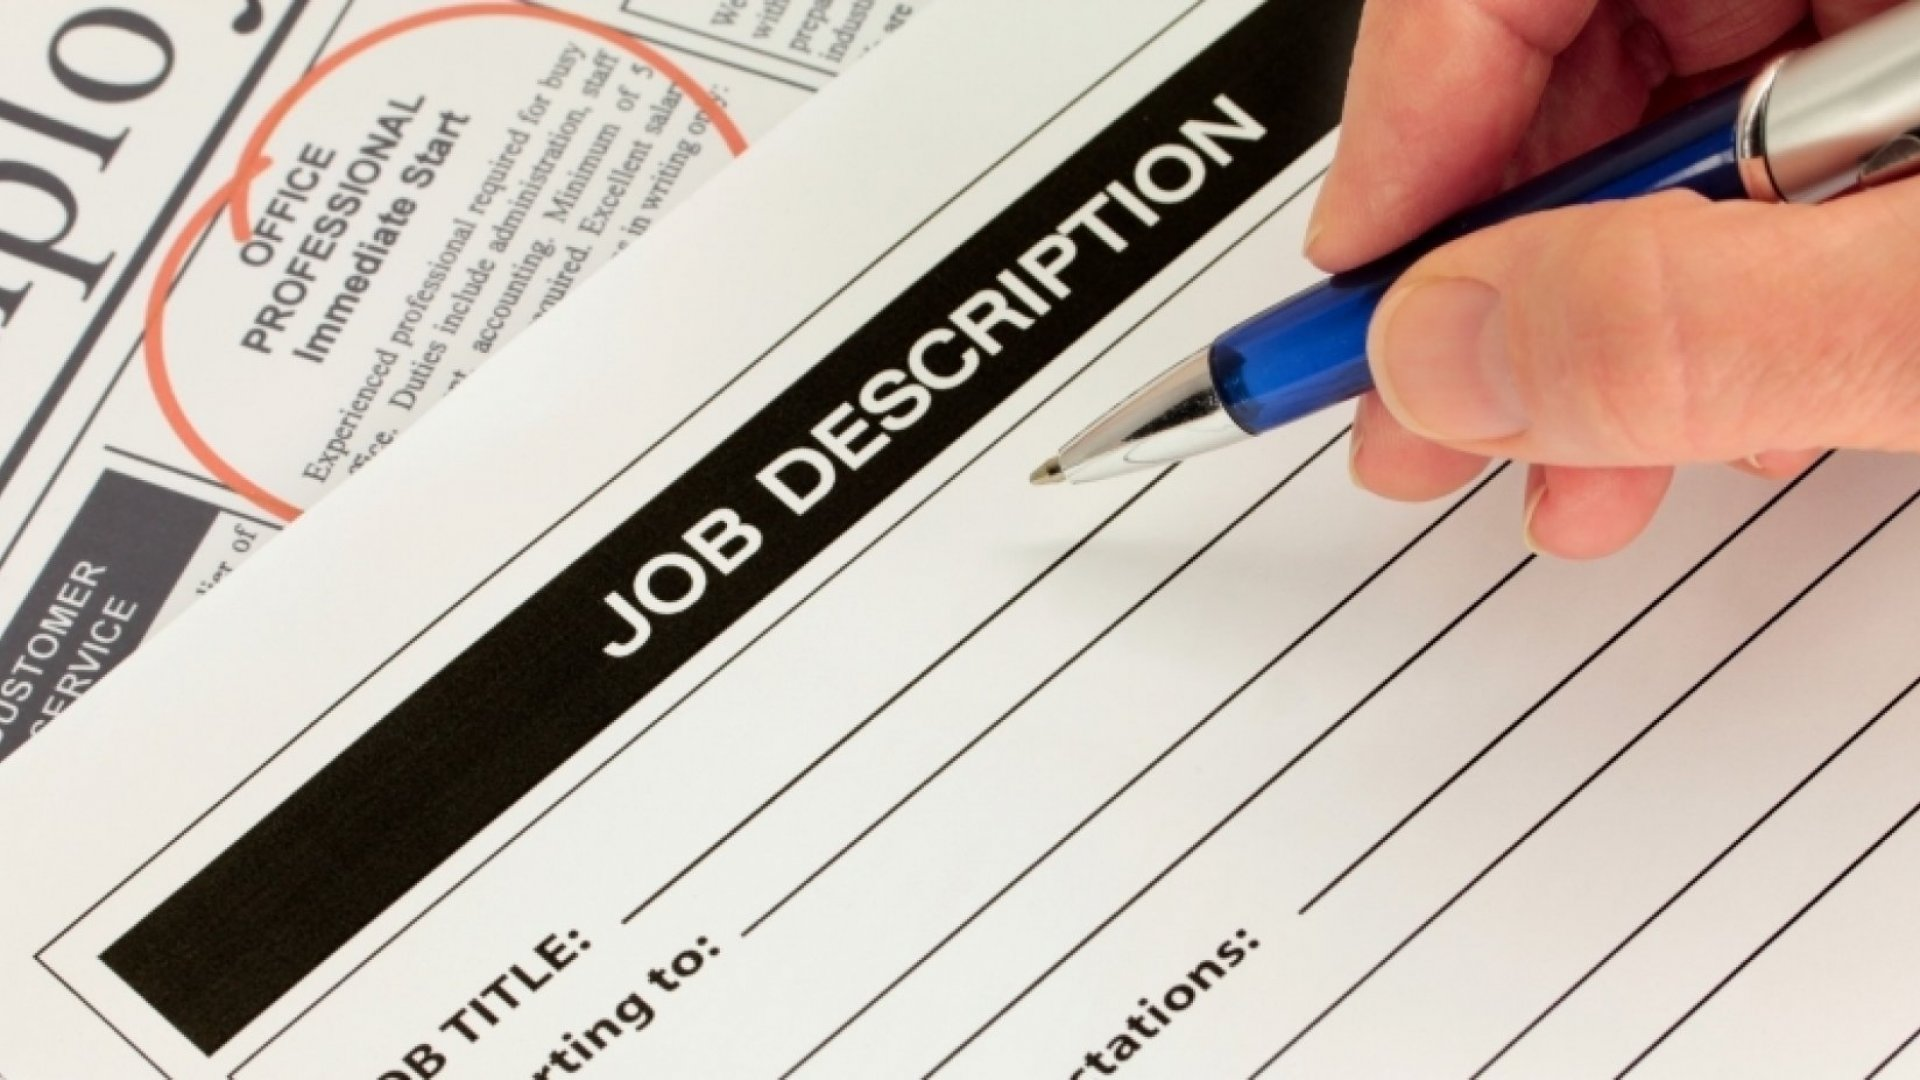 7 Steps to Writing the Perfect Job Description